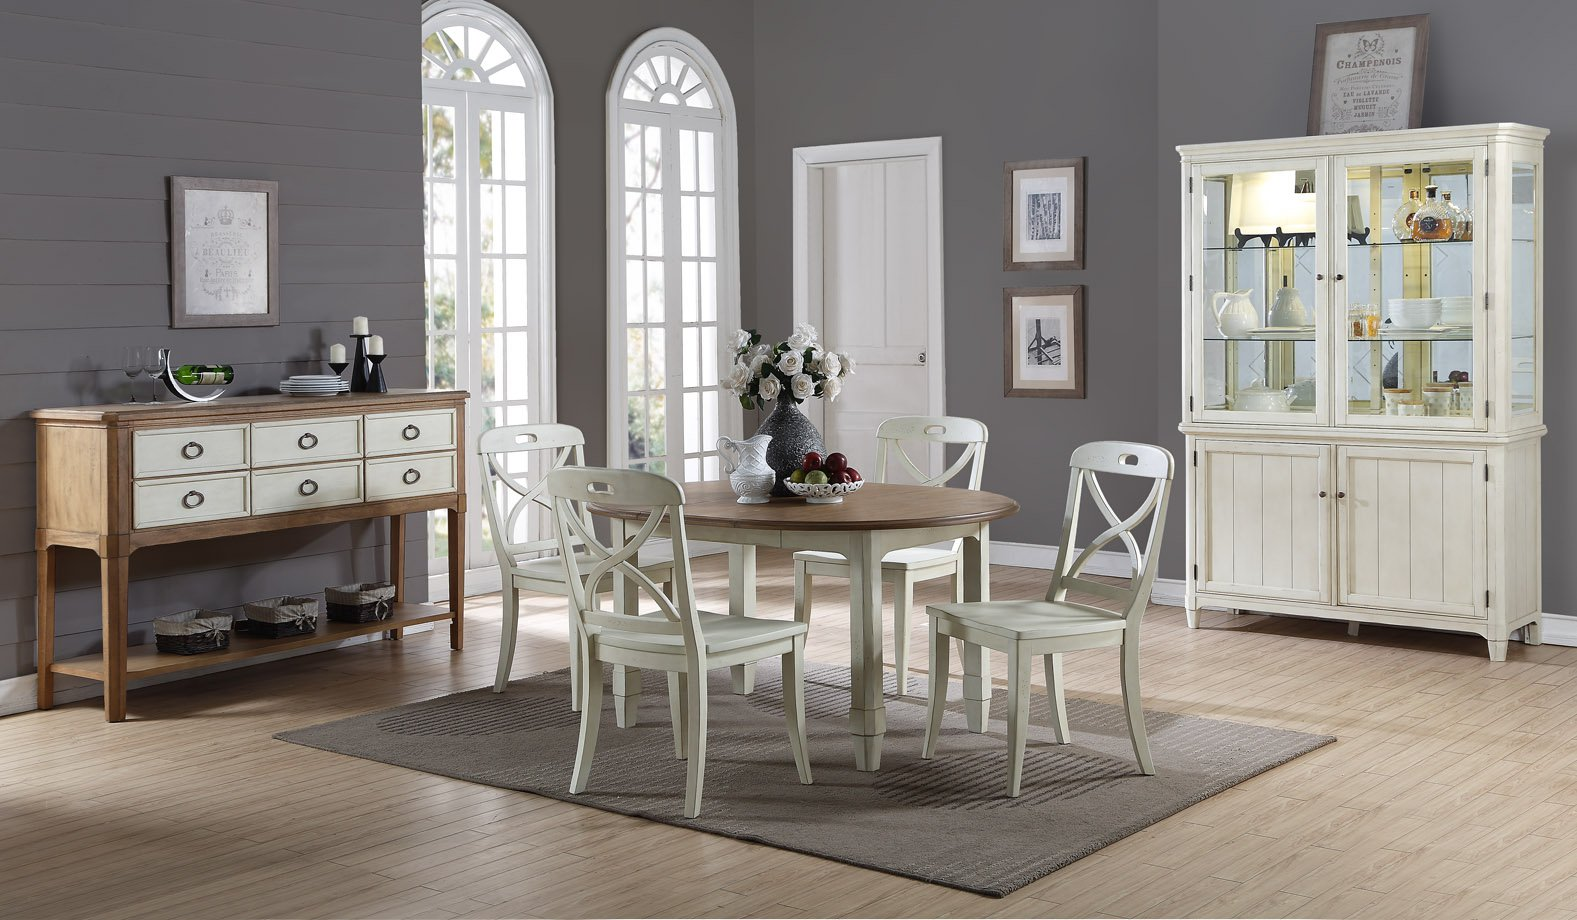 Millbrook Dining white chairs